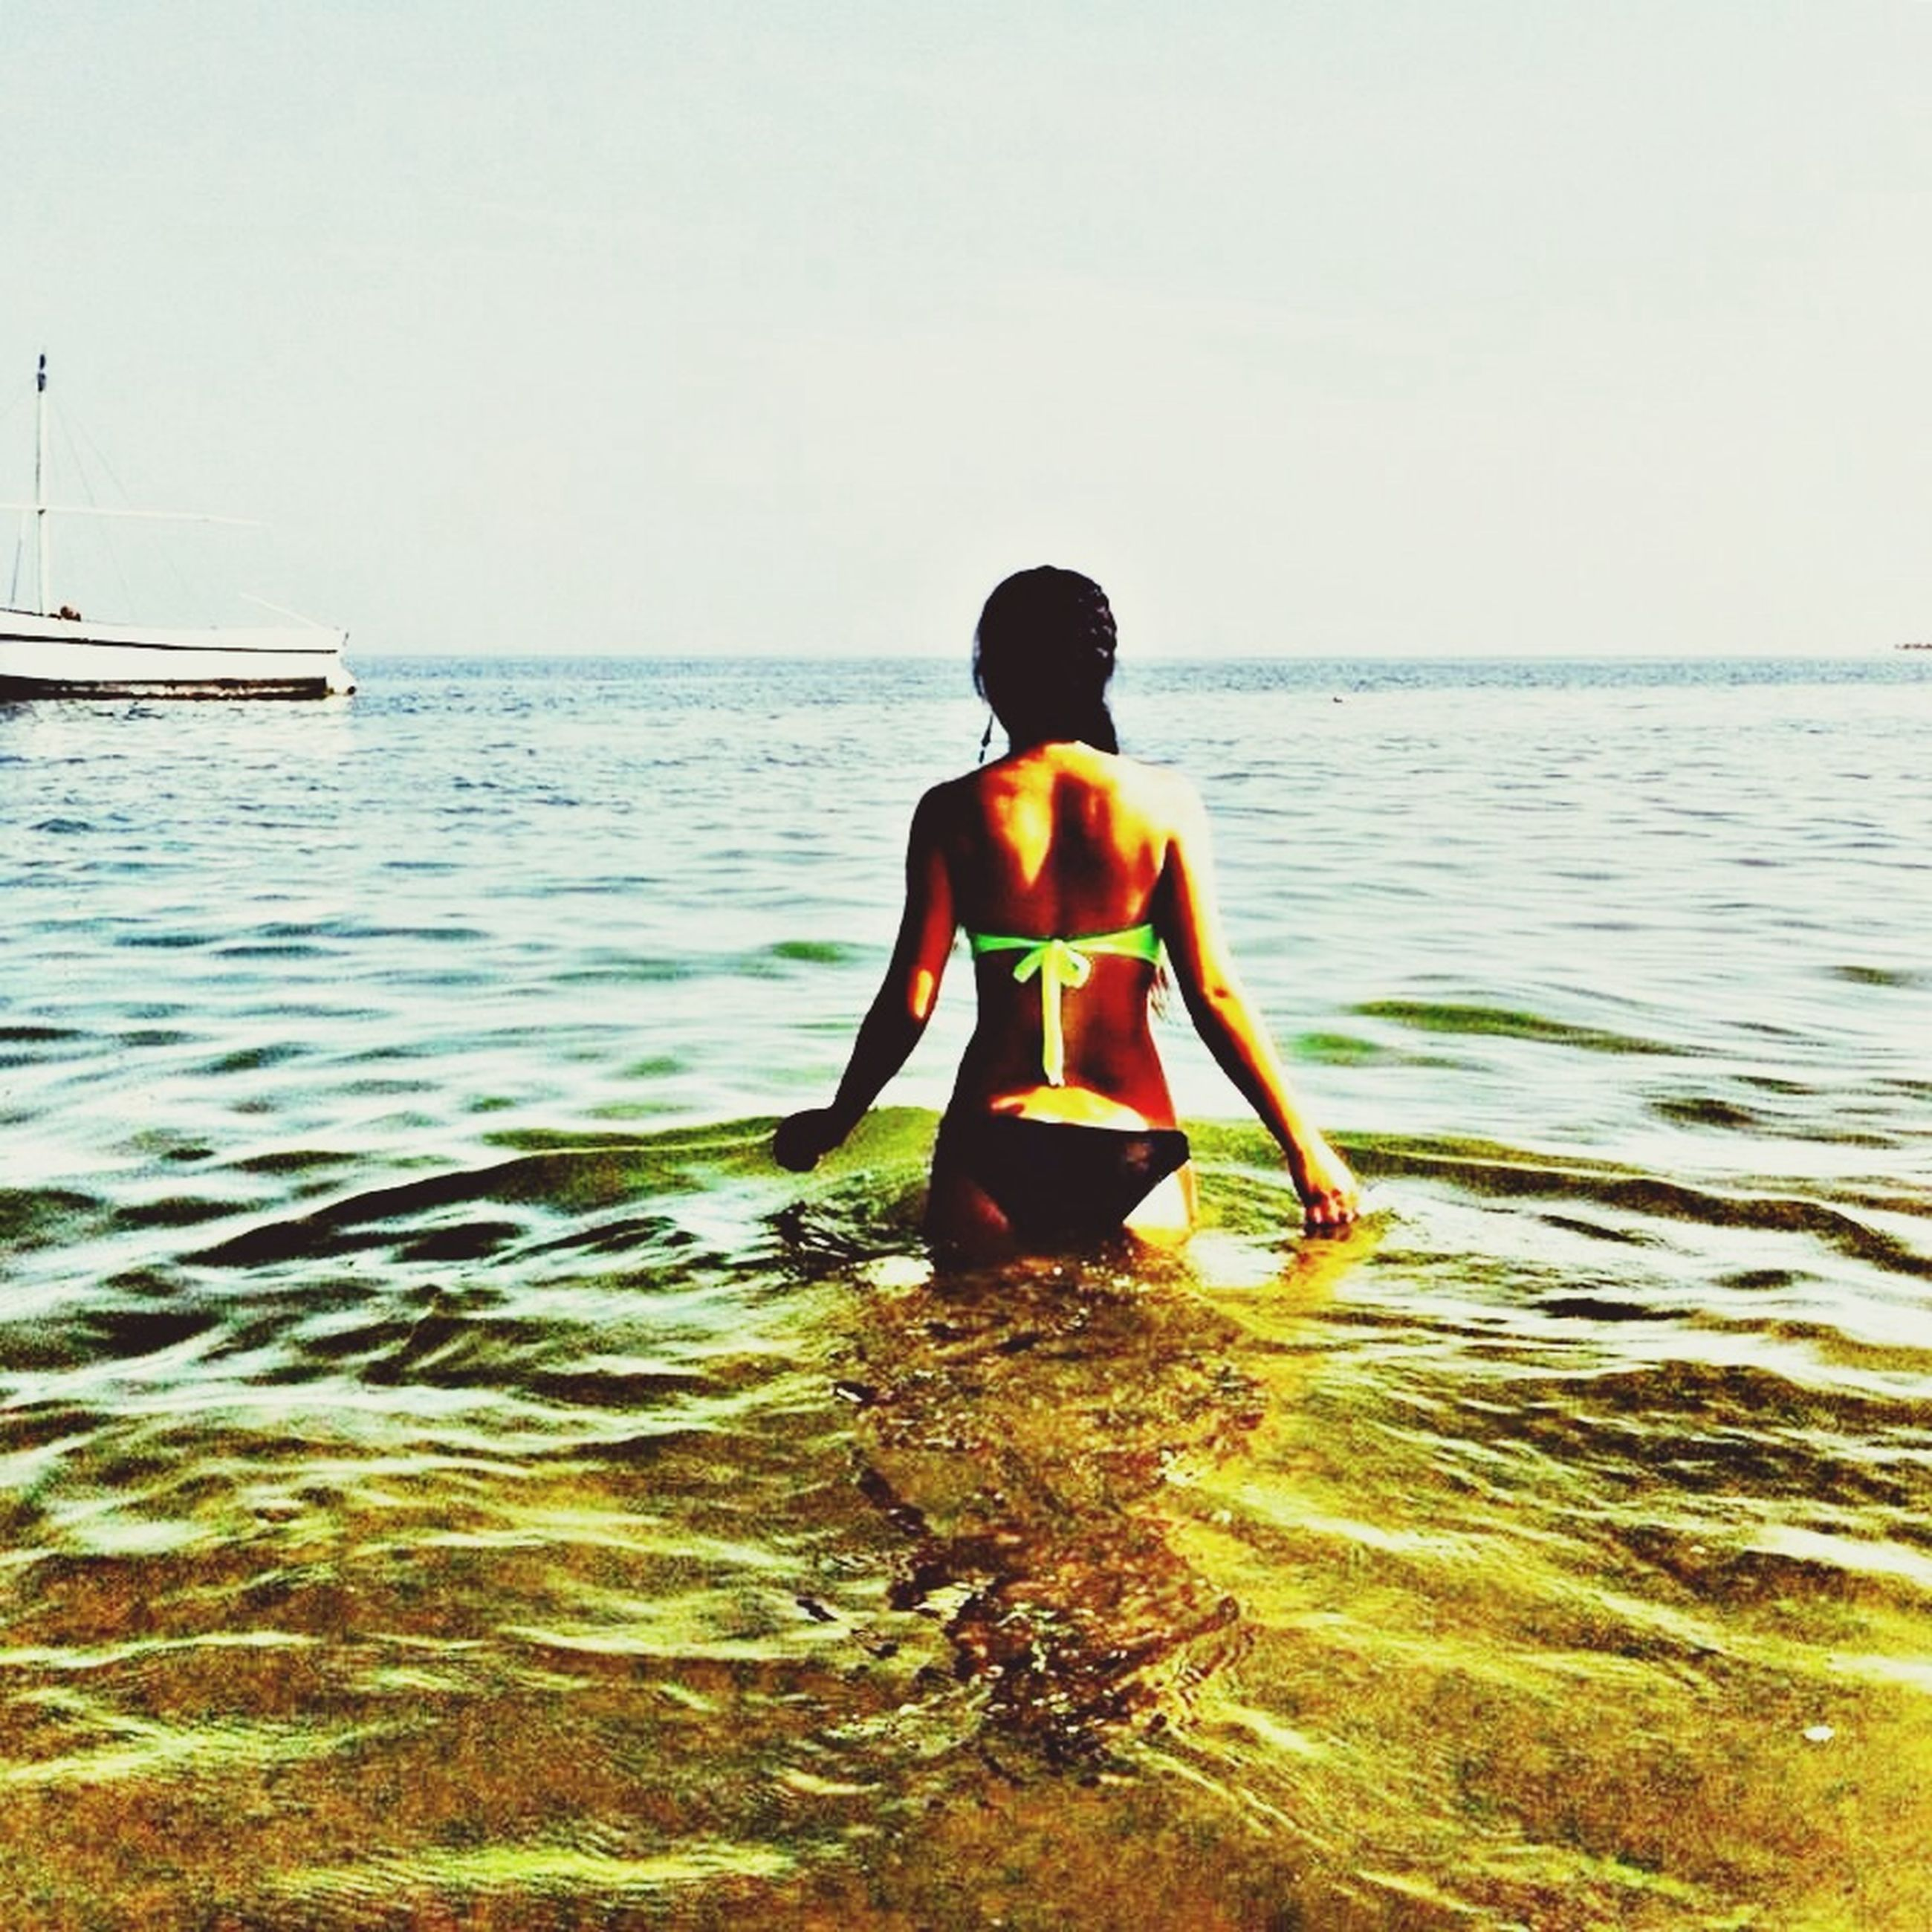 water, sea, rear view, full length, lifestyles, leisure activity, horizon over water, clear sky, casual clothing, copy space, standing, childhood, rippled, boys, tranquility, tranquil scene, nature, person